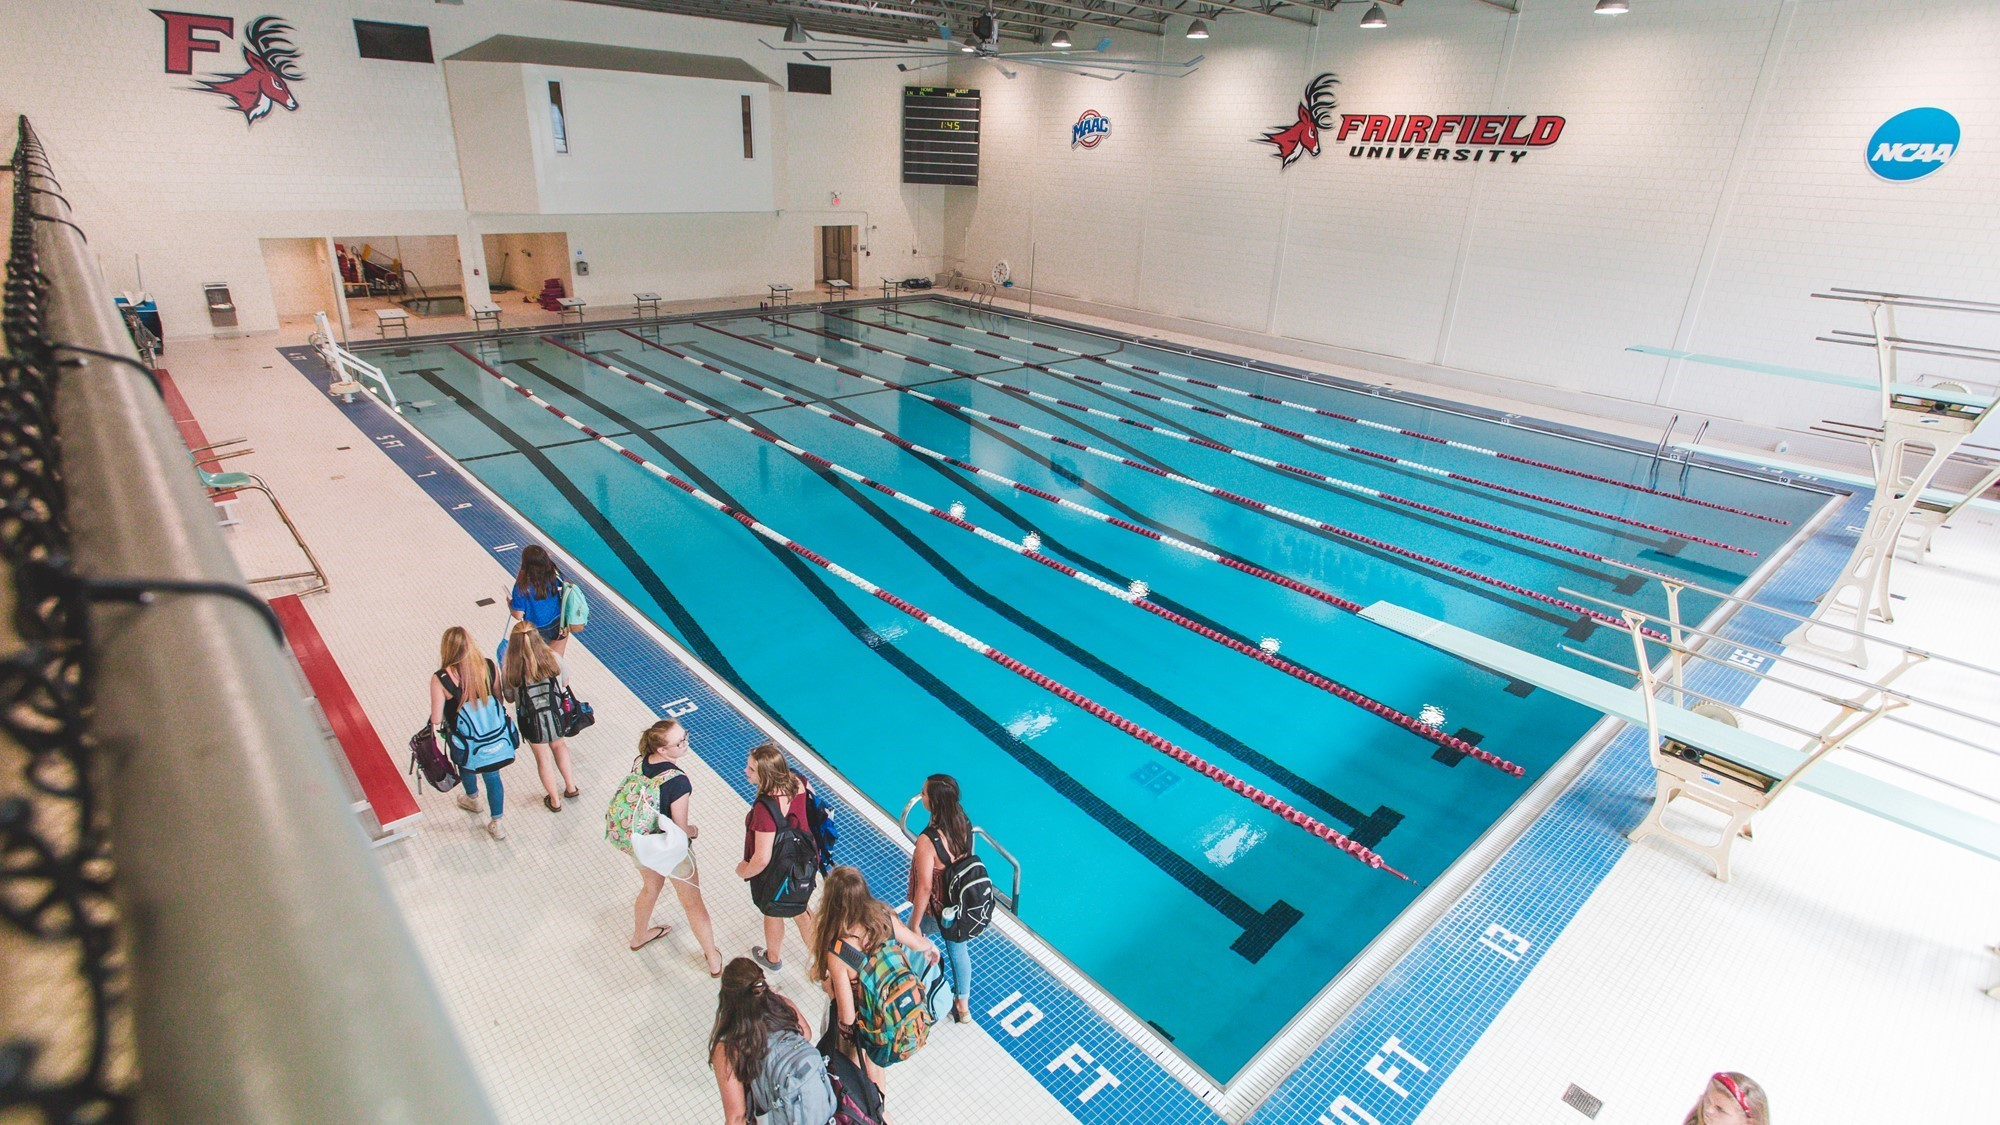 RecPlex Pool - Facilities - Fairfield University Athletics